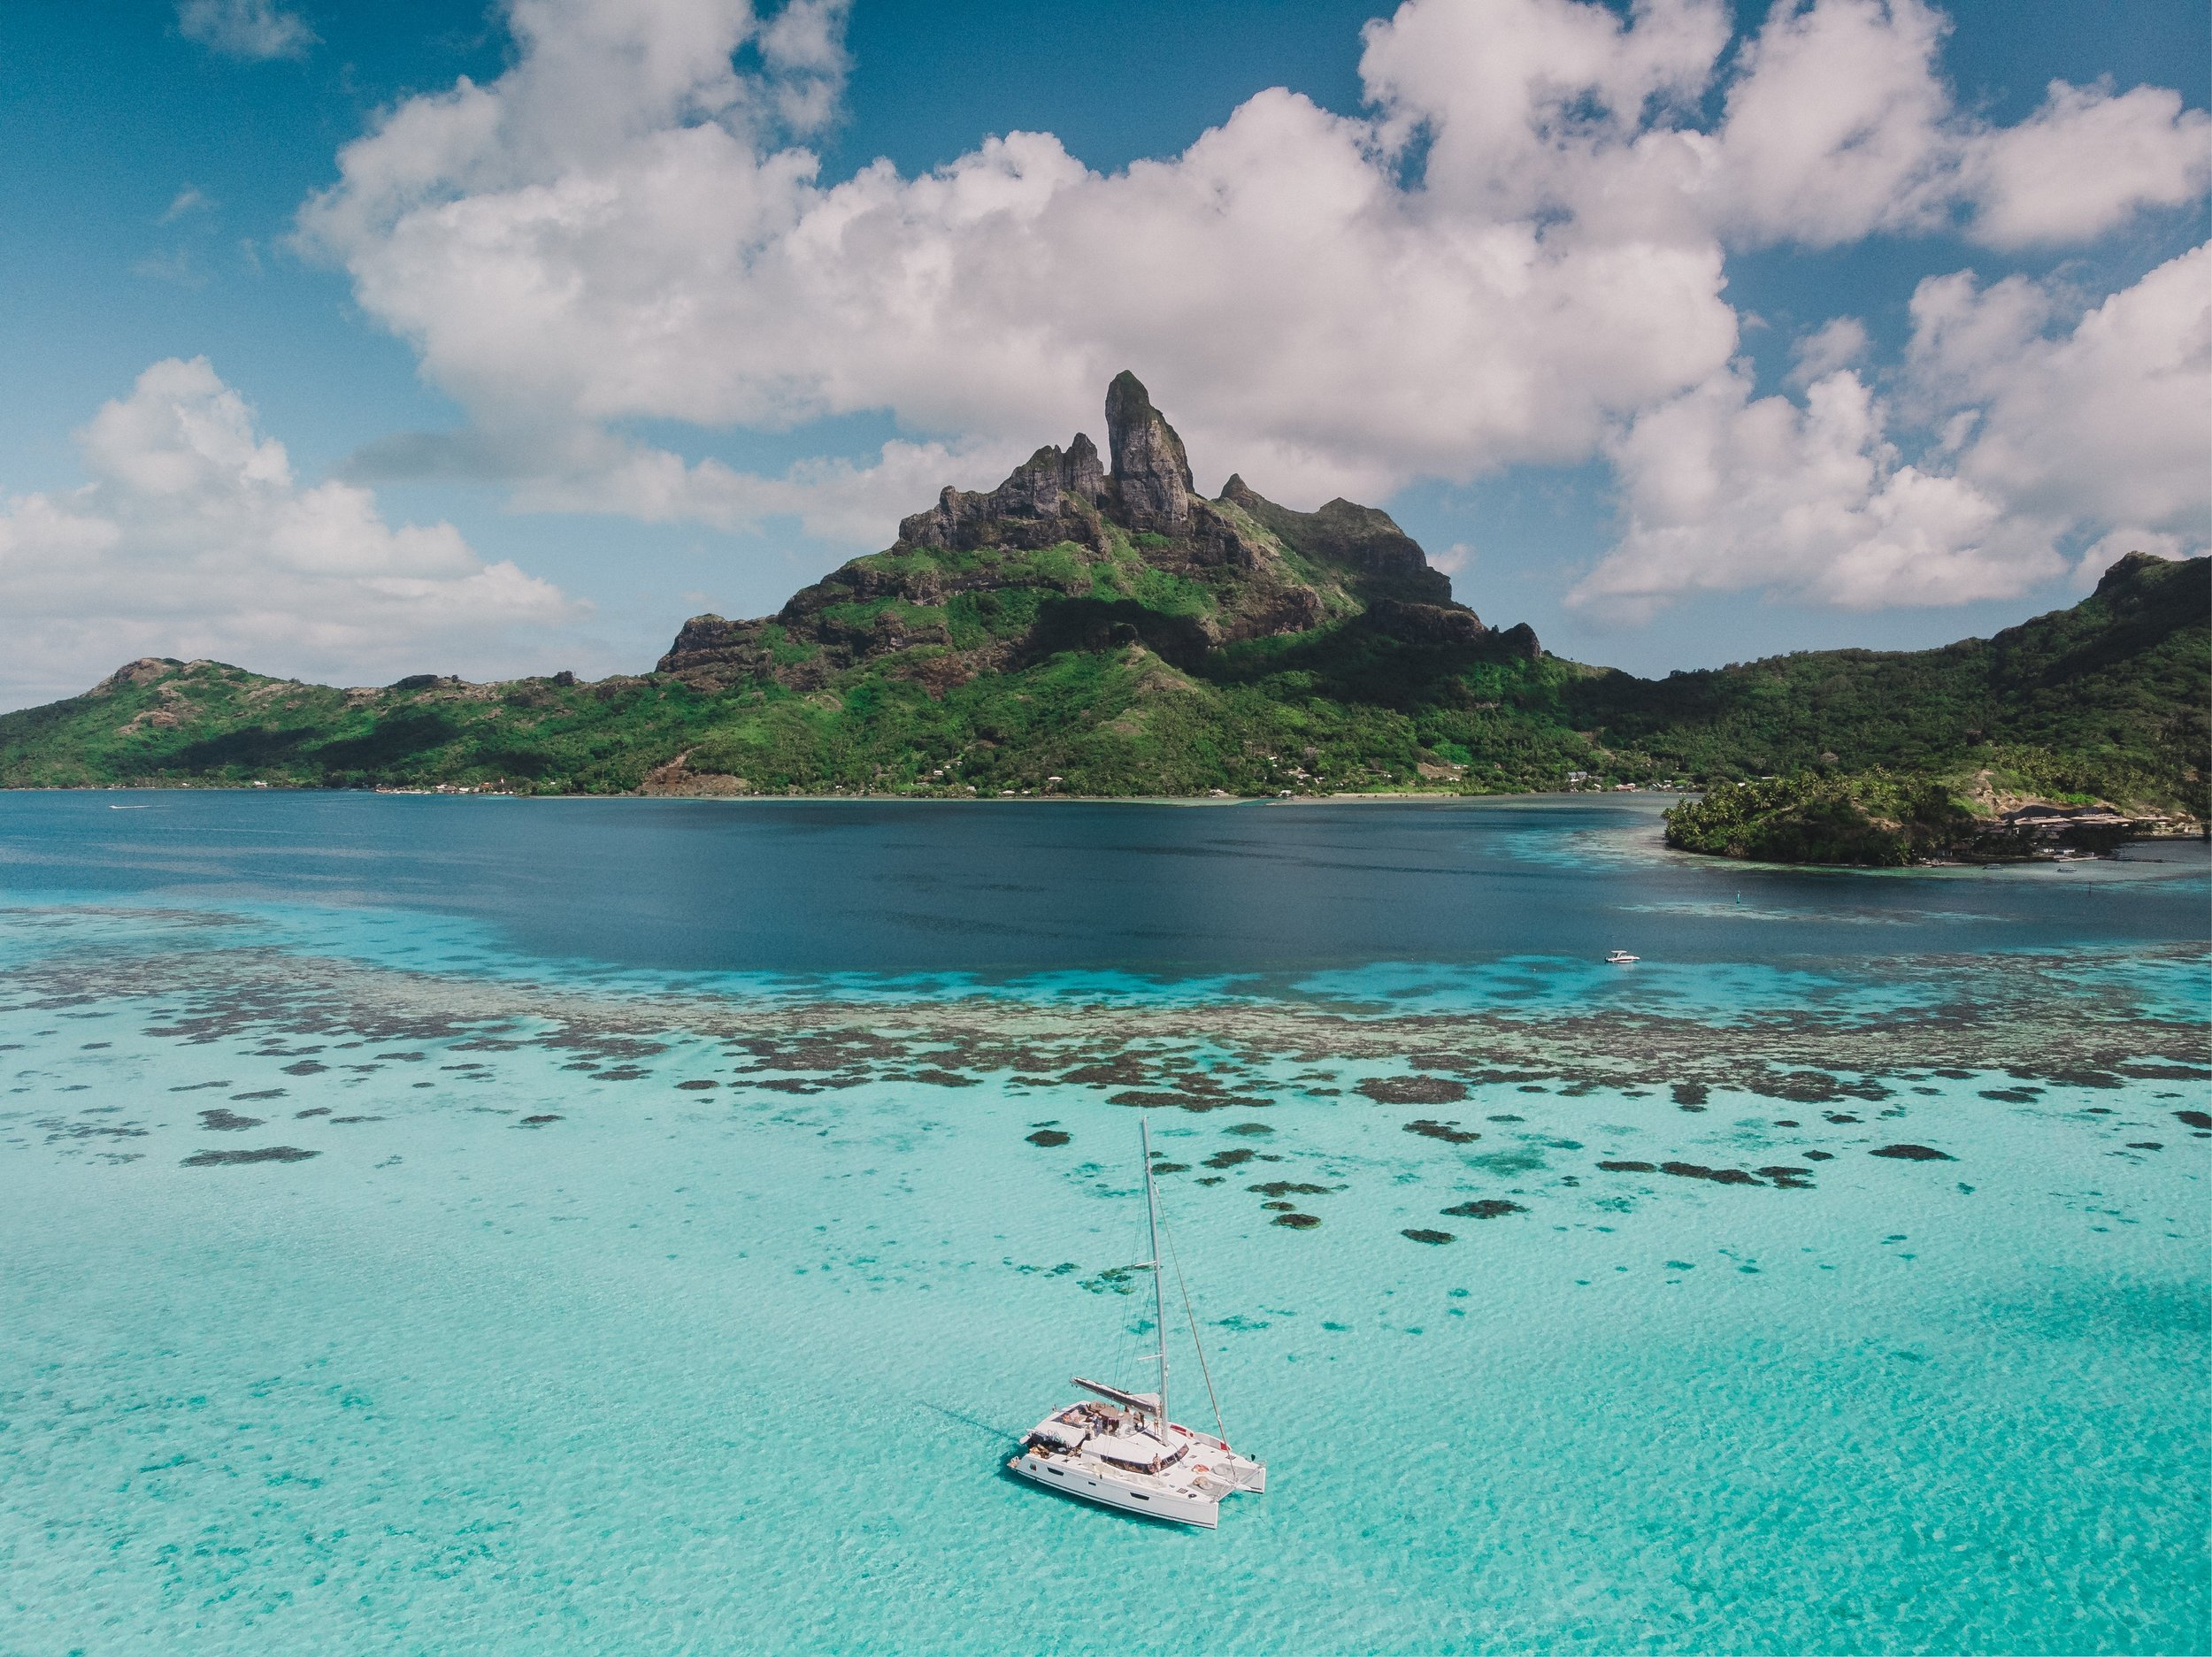 sailboat in paradiscal water by a rocky island in bora bora